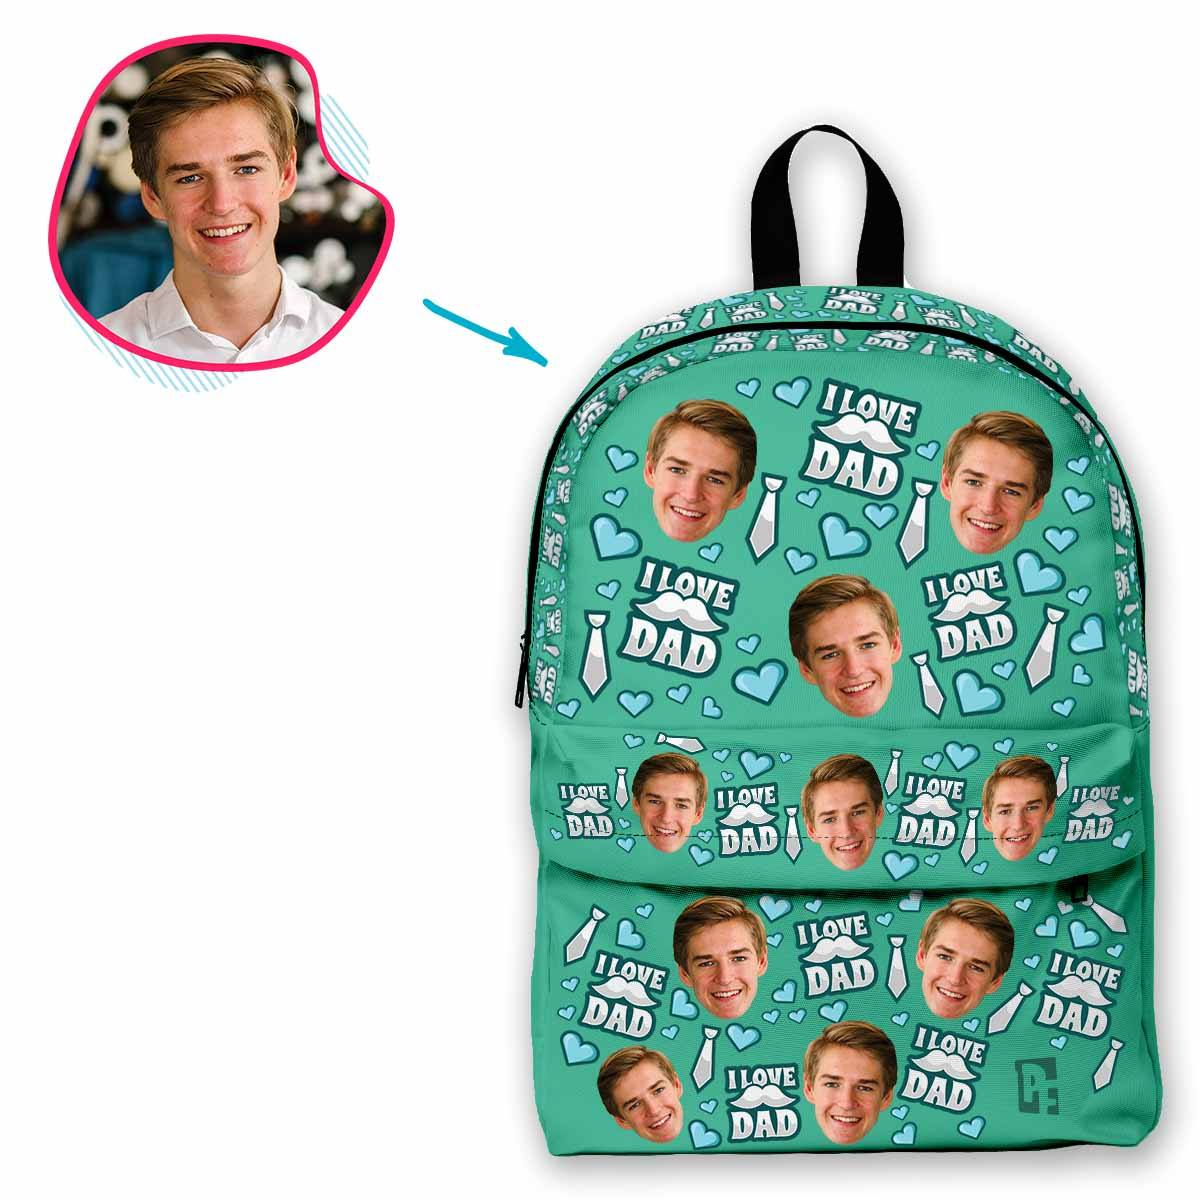 mint Love Dad classic backpack personalized with photo of face printed on it